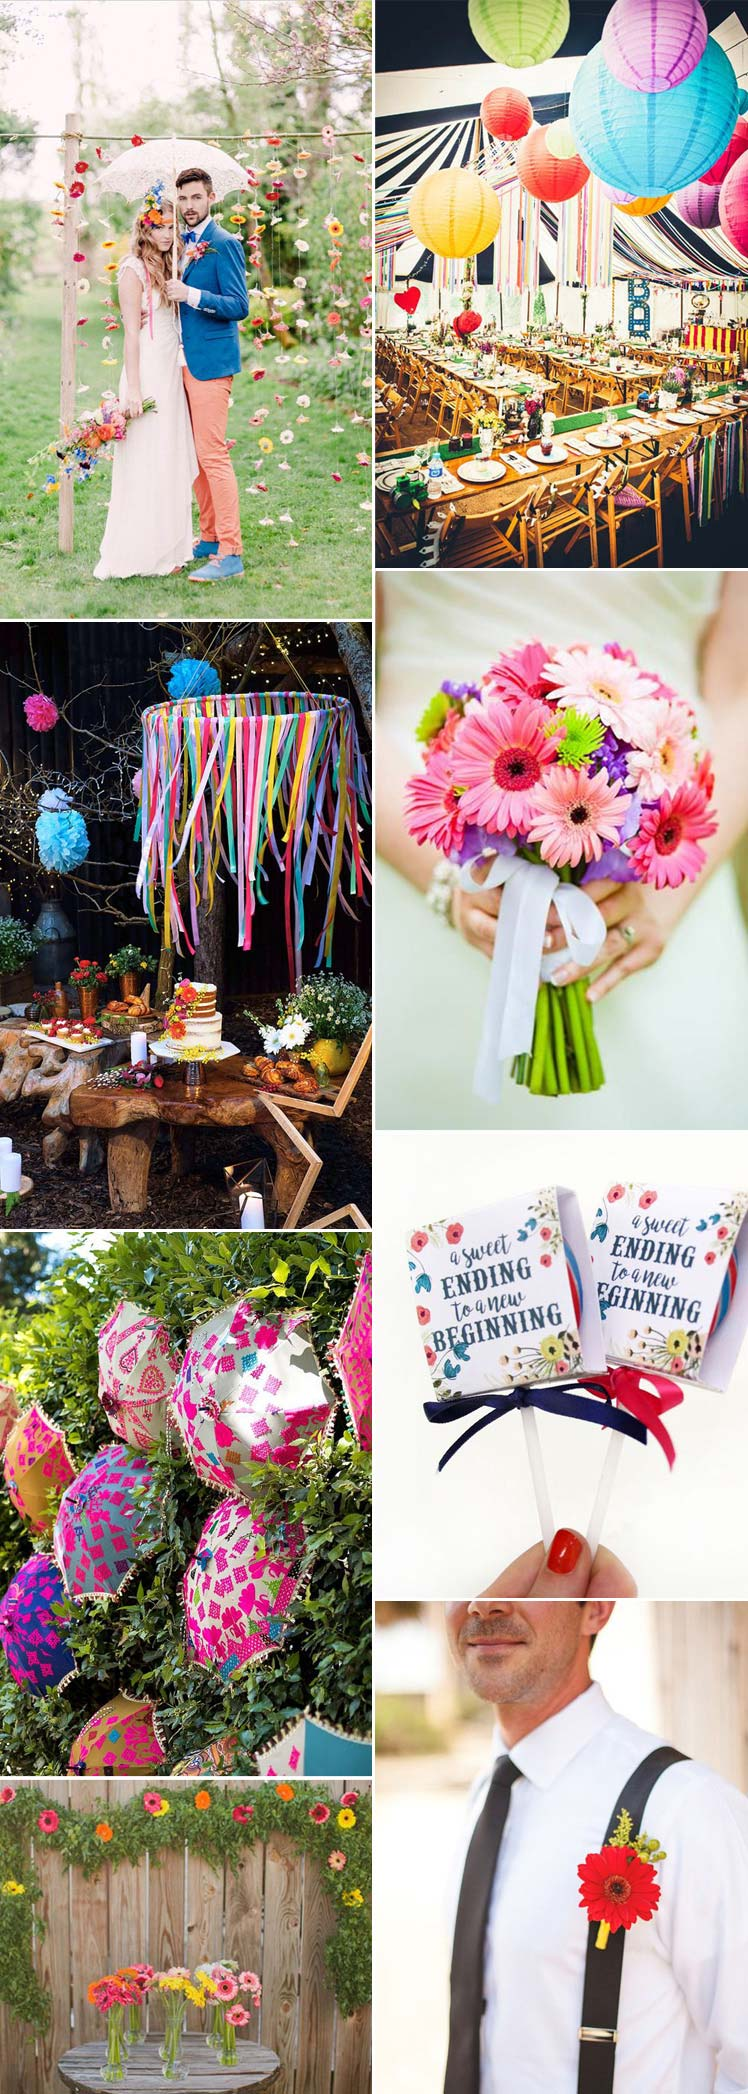 gerbera wedding flower ideas